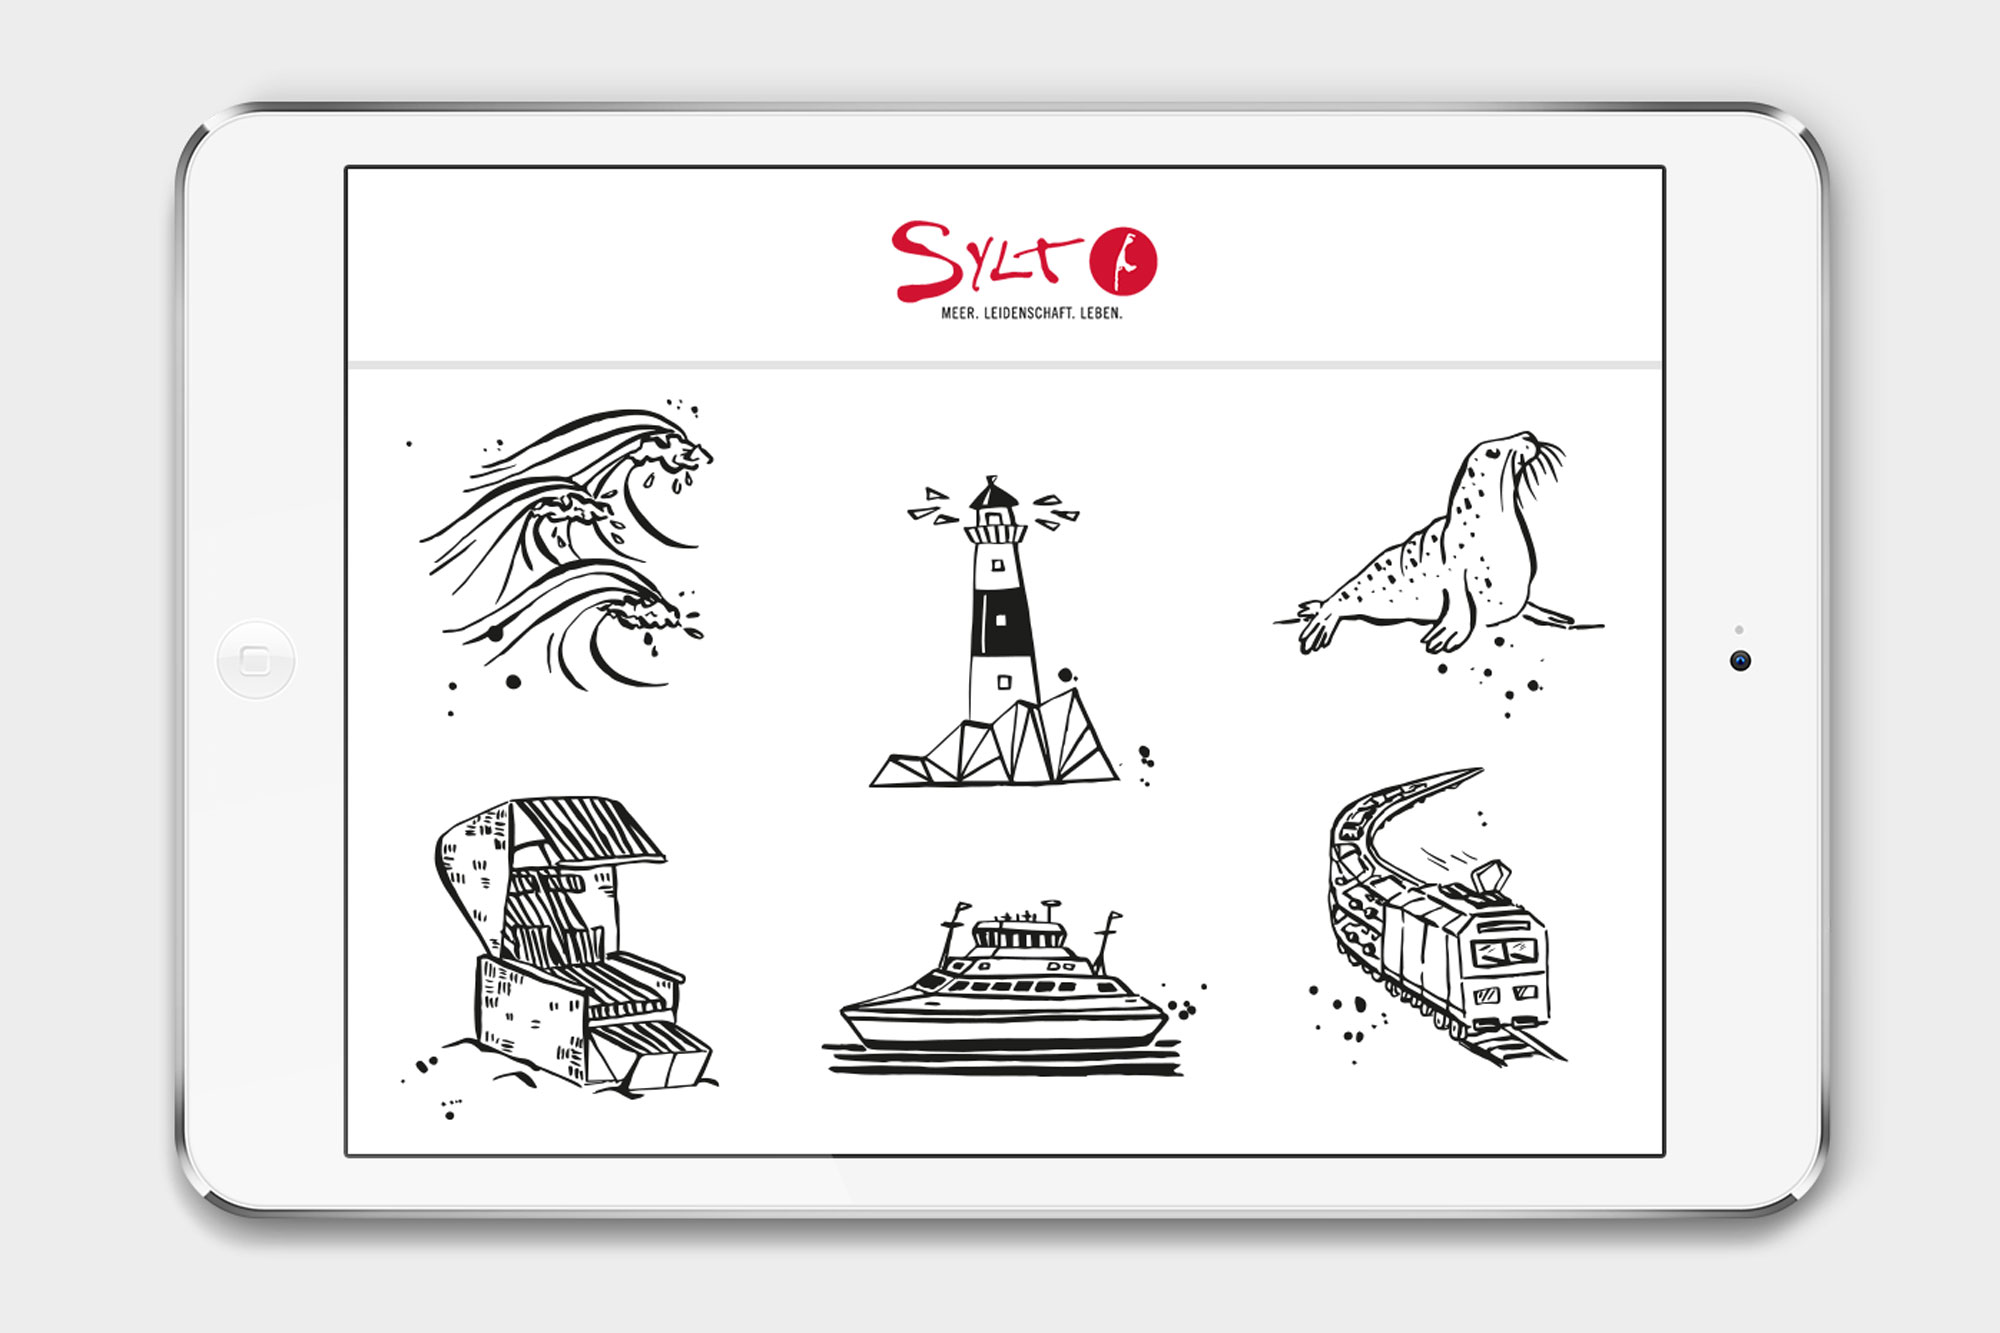 Sylt_de_Illustrationen_04